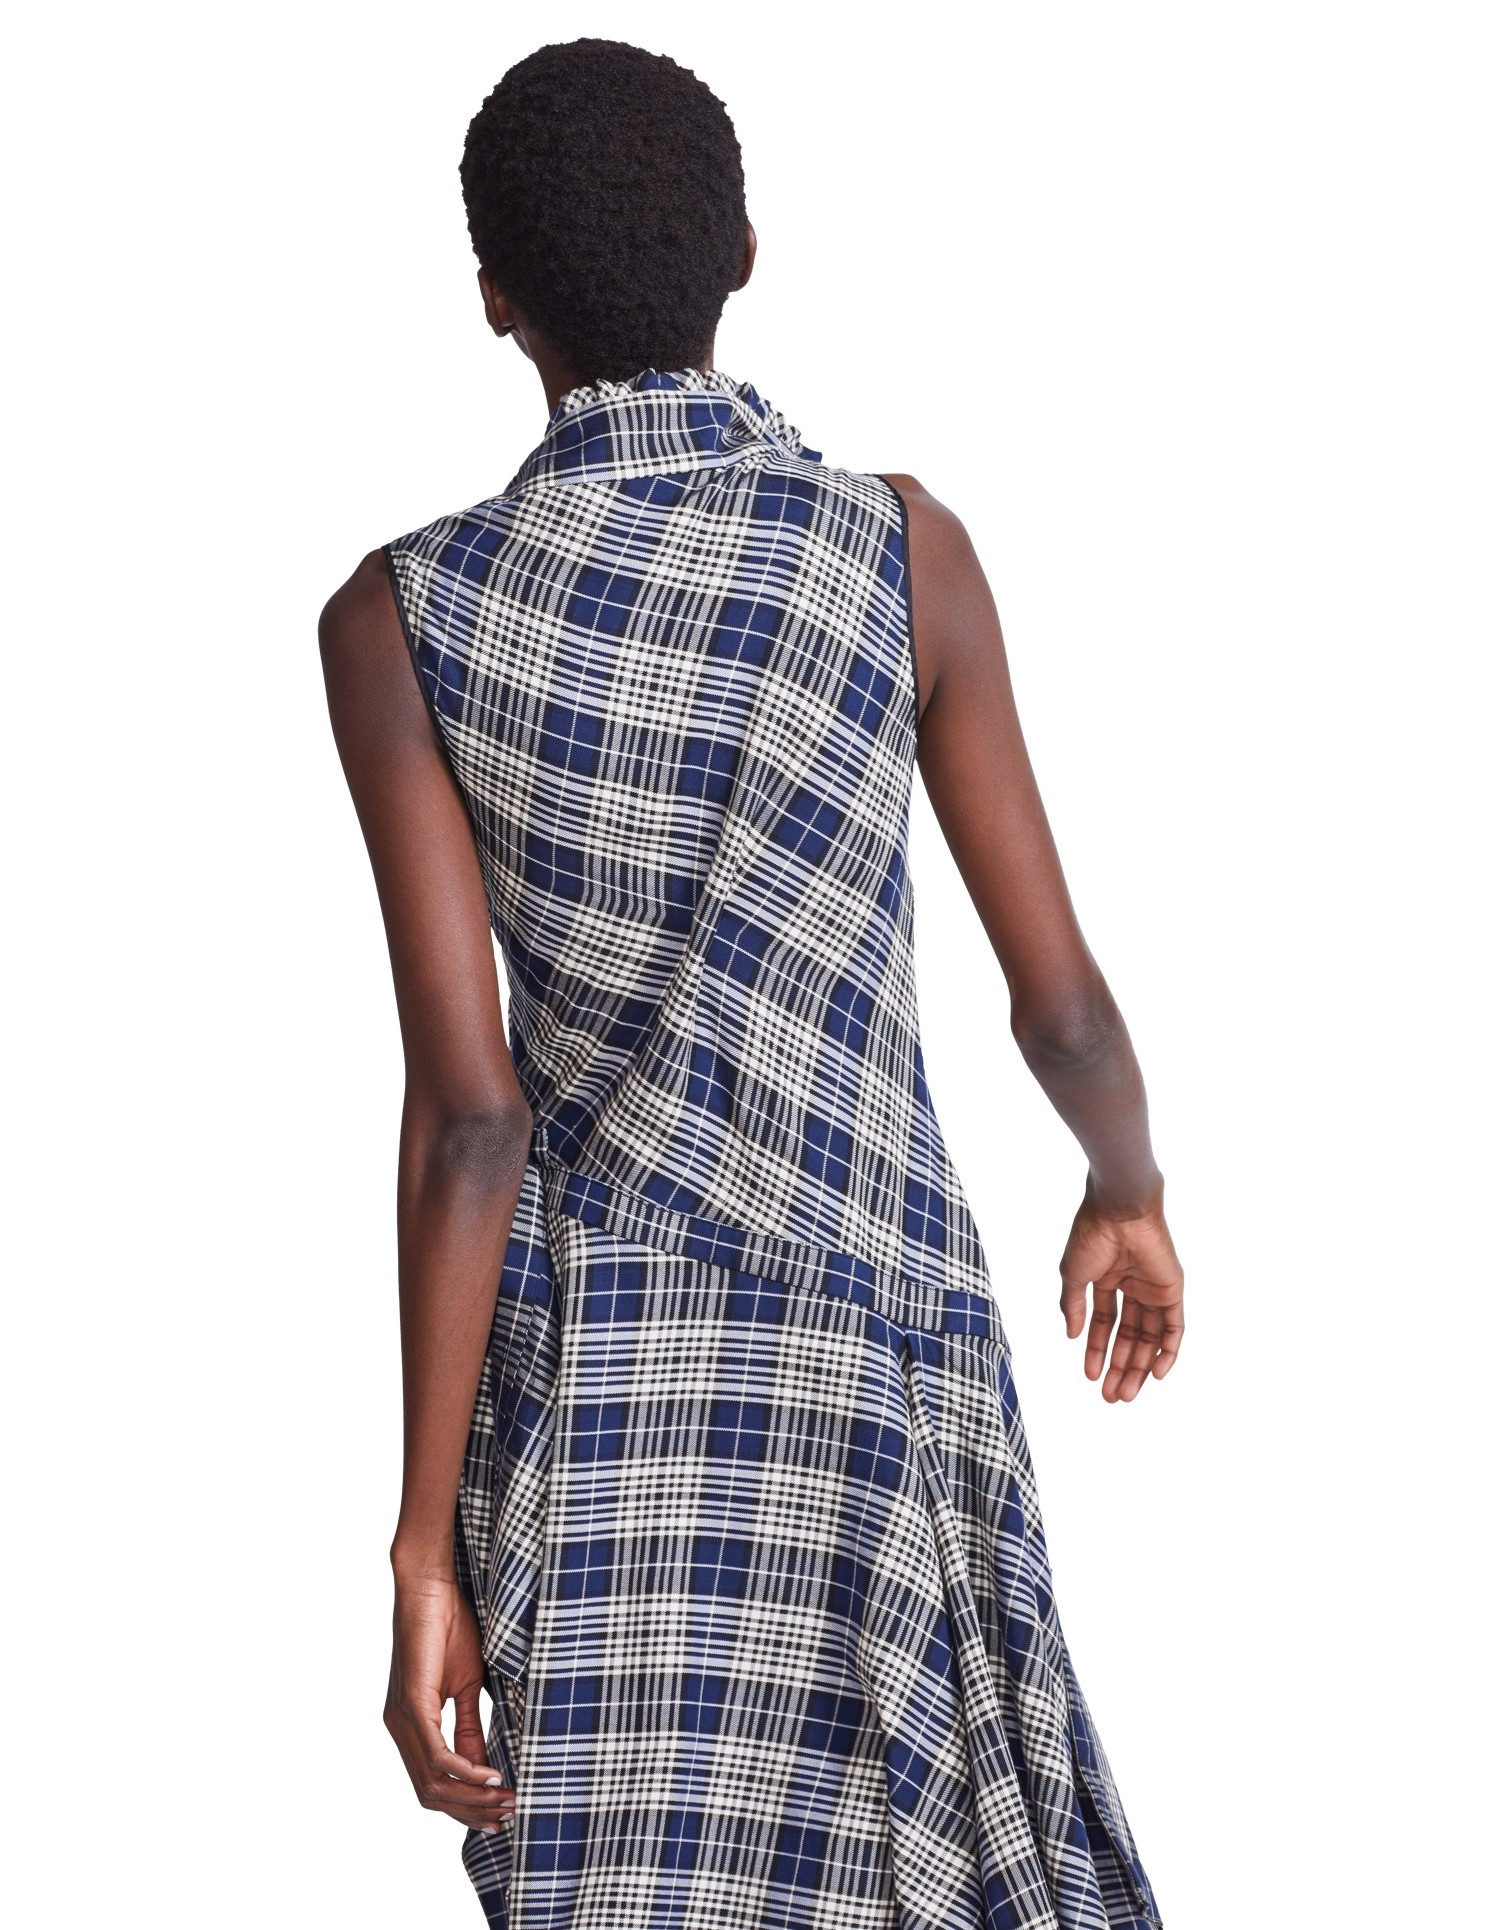 MONSE Plaid Cowl Neck Shirt Dress on Model Back View